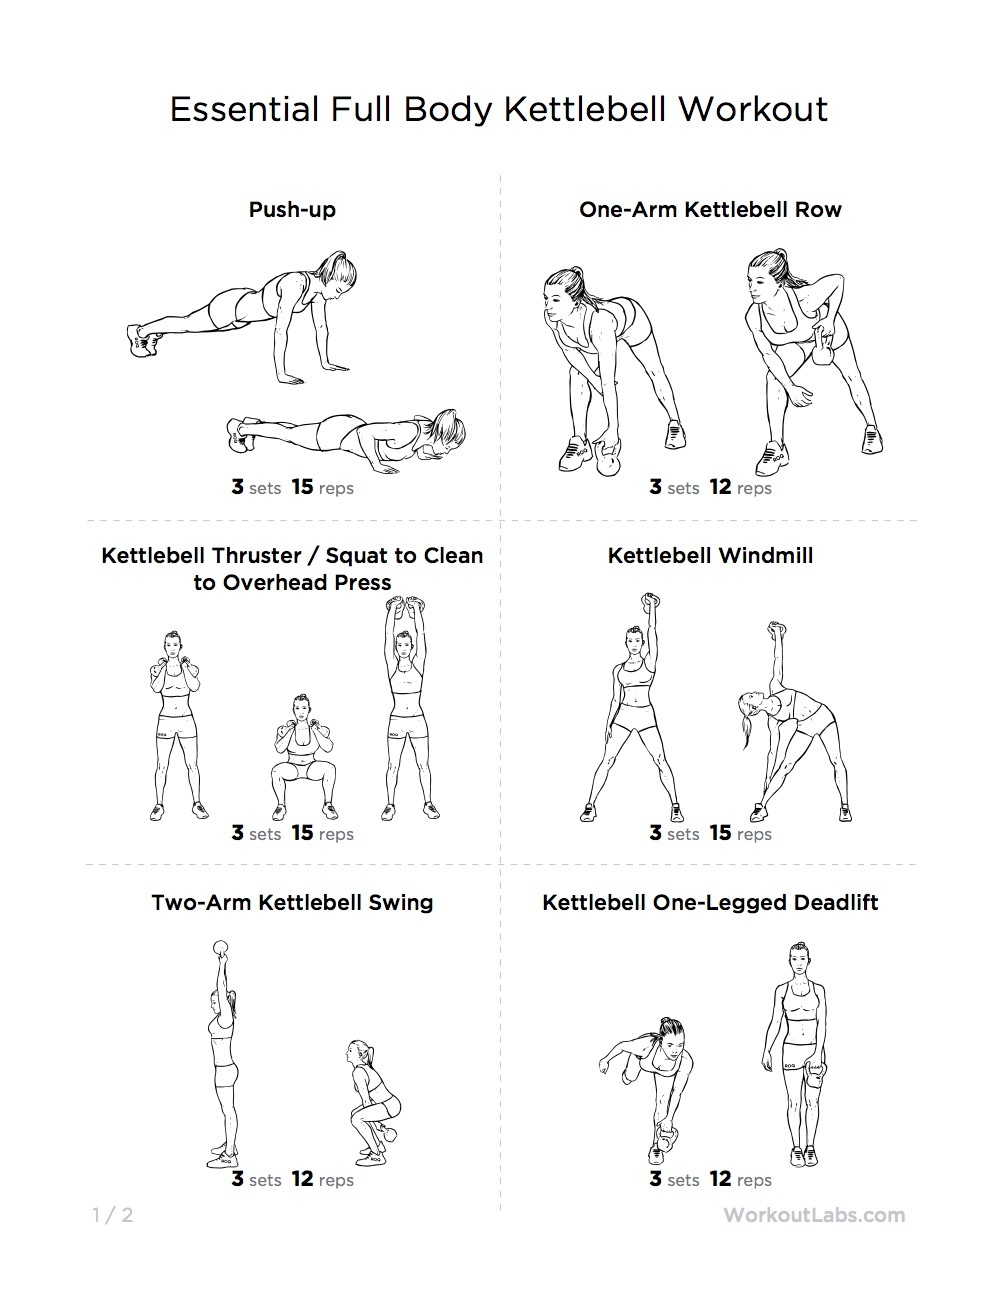 Printable Workout Plans For Men | Hauck Mansion - Free Printable Workout Plans